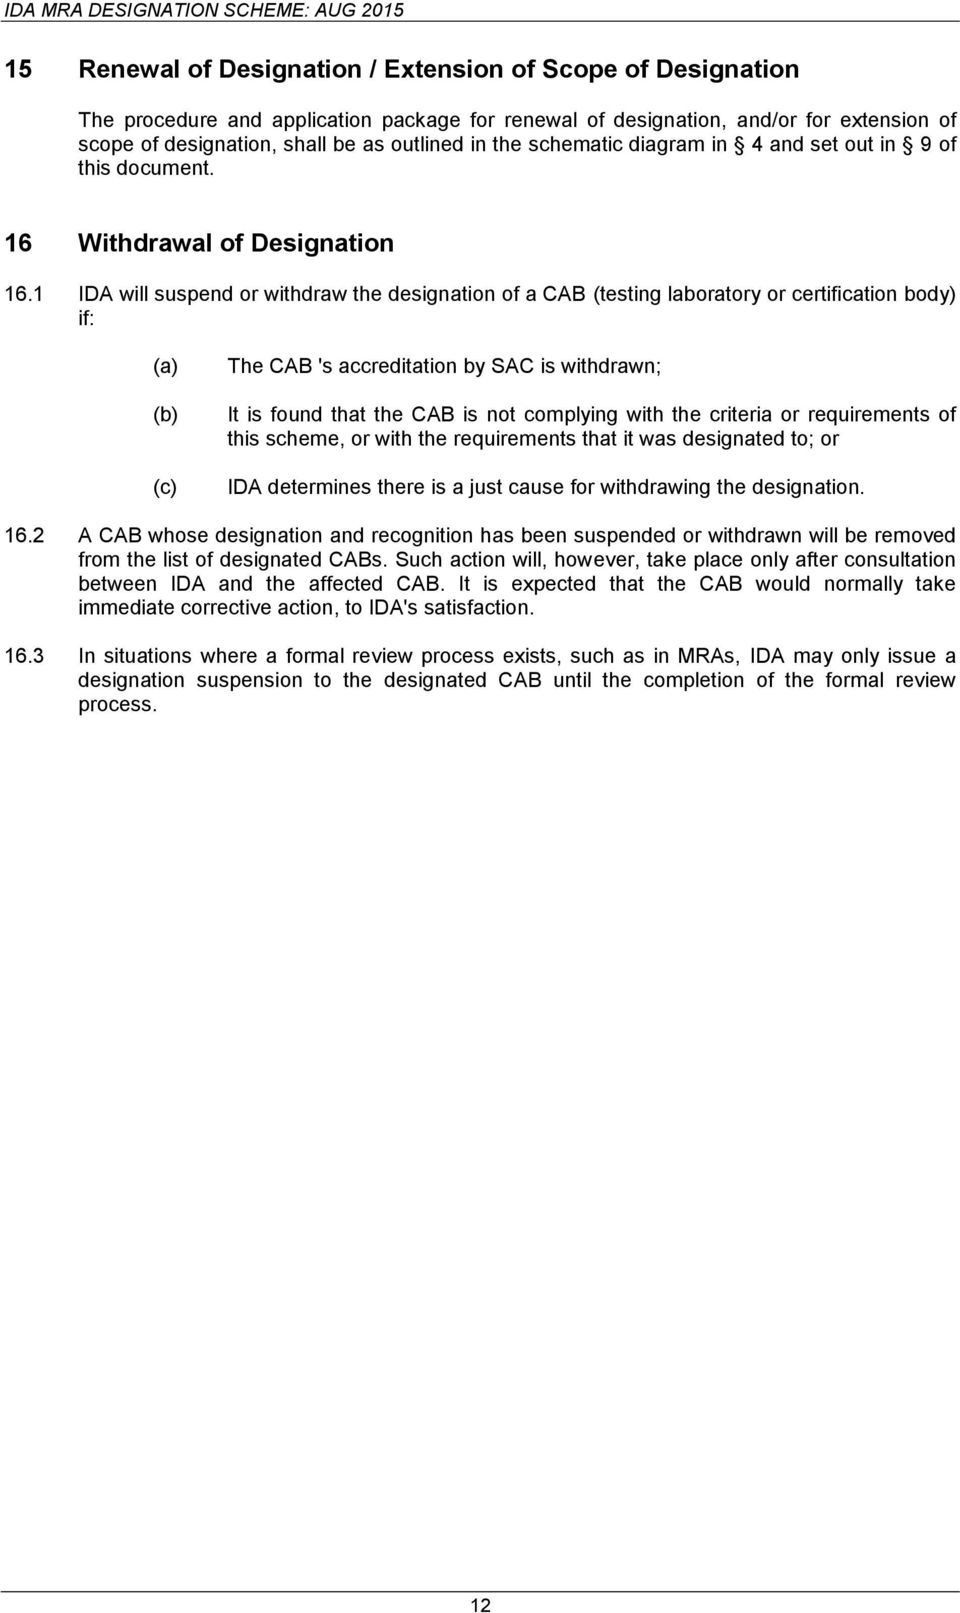 1 IDA will suspend or withdraw the designation of a CAB (testing laboratory or certification body) if: The CAB 's accreditation by SAC is withdrawn; It is found that the CAB is not complying with the